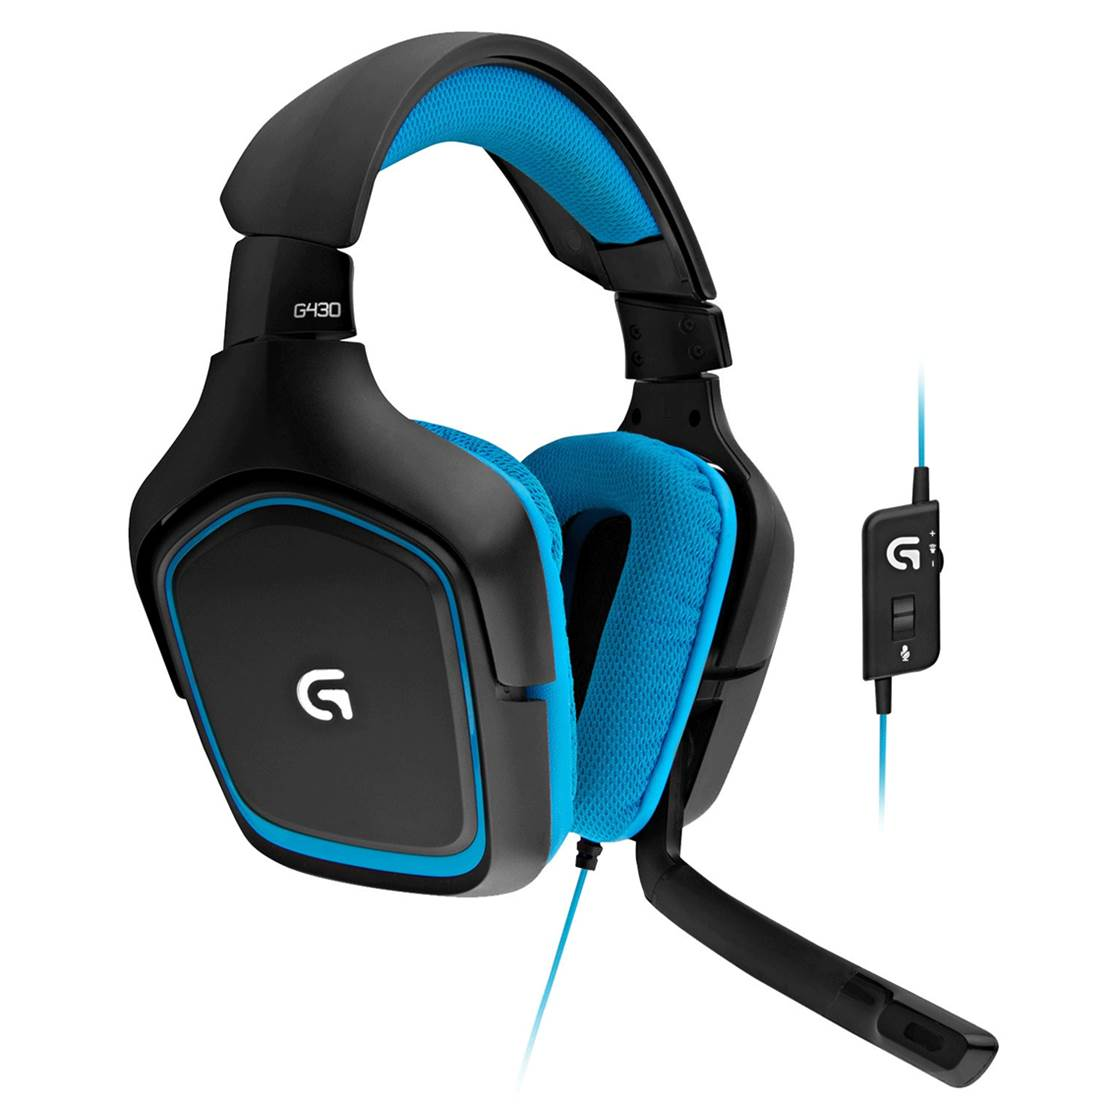 Logitech G430 7.1 DTS Gaming Headset